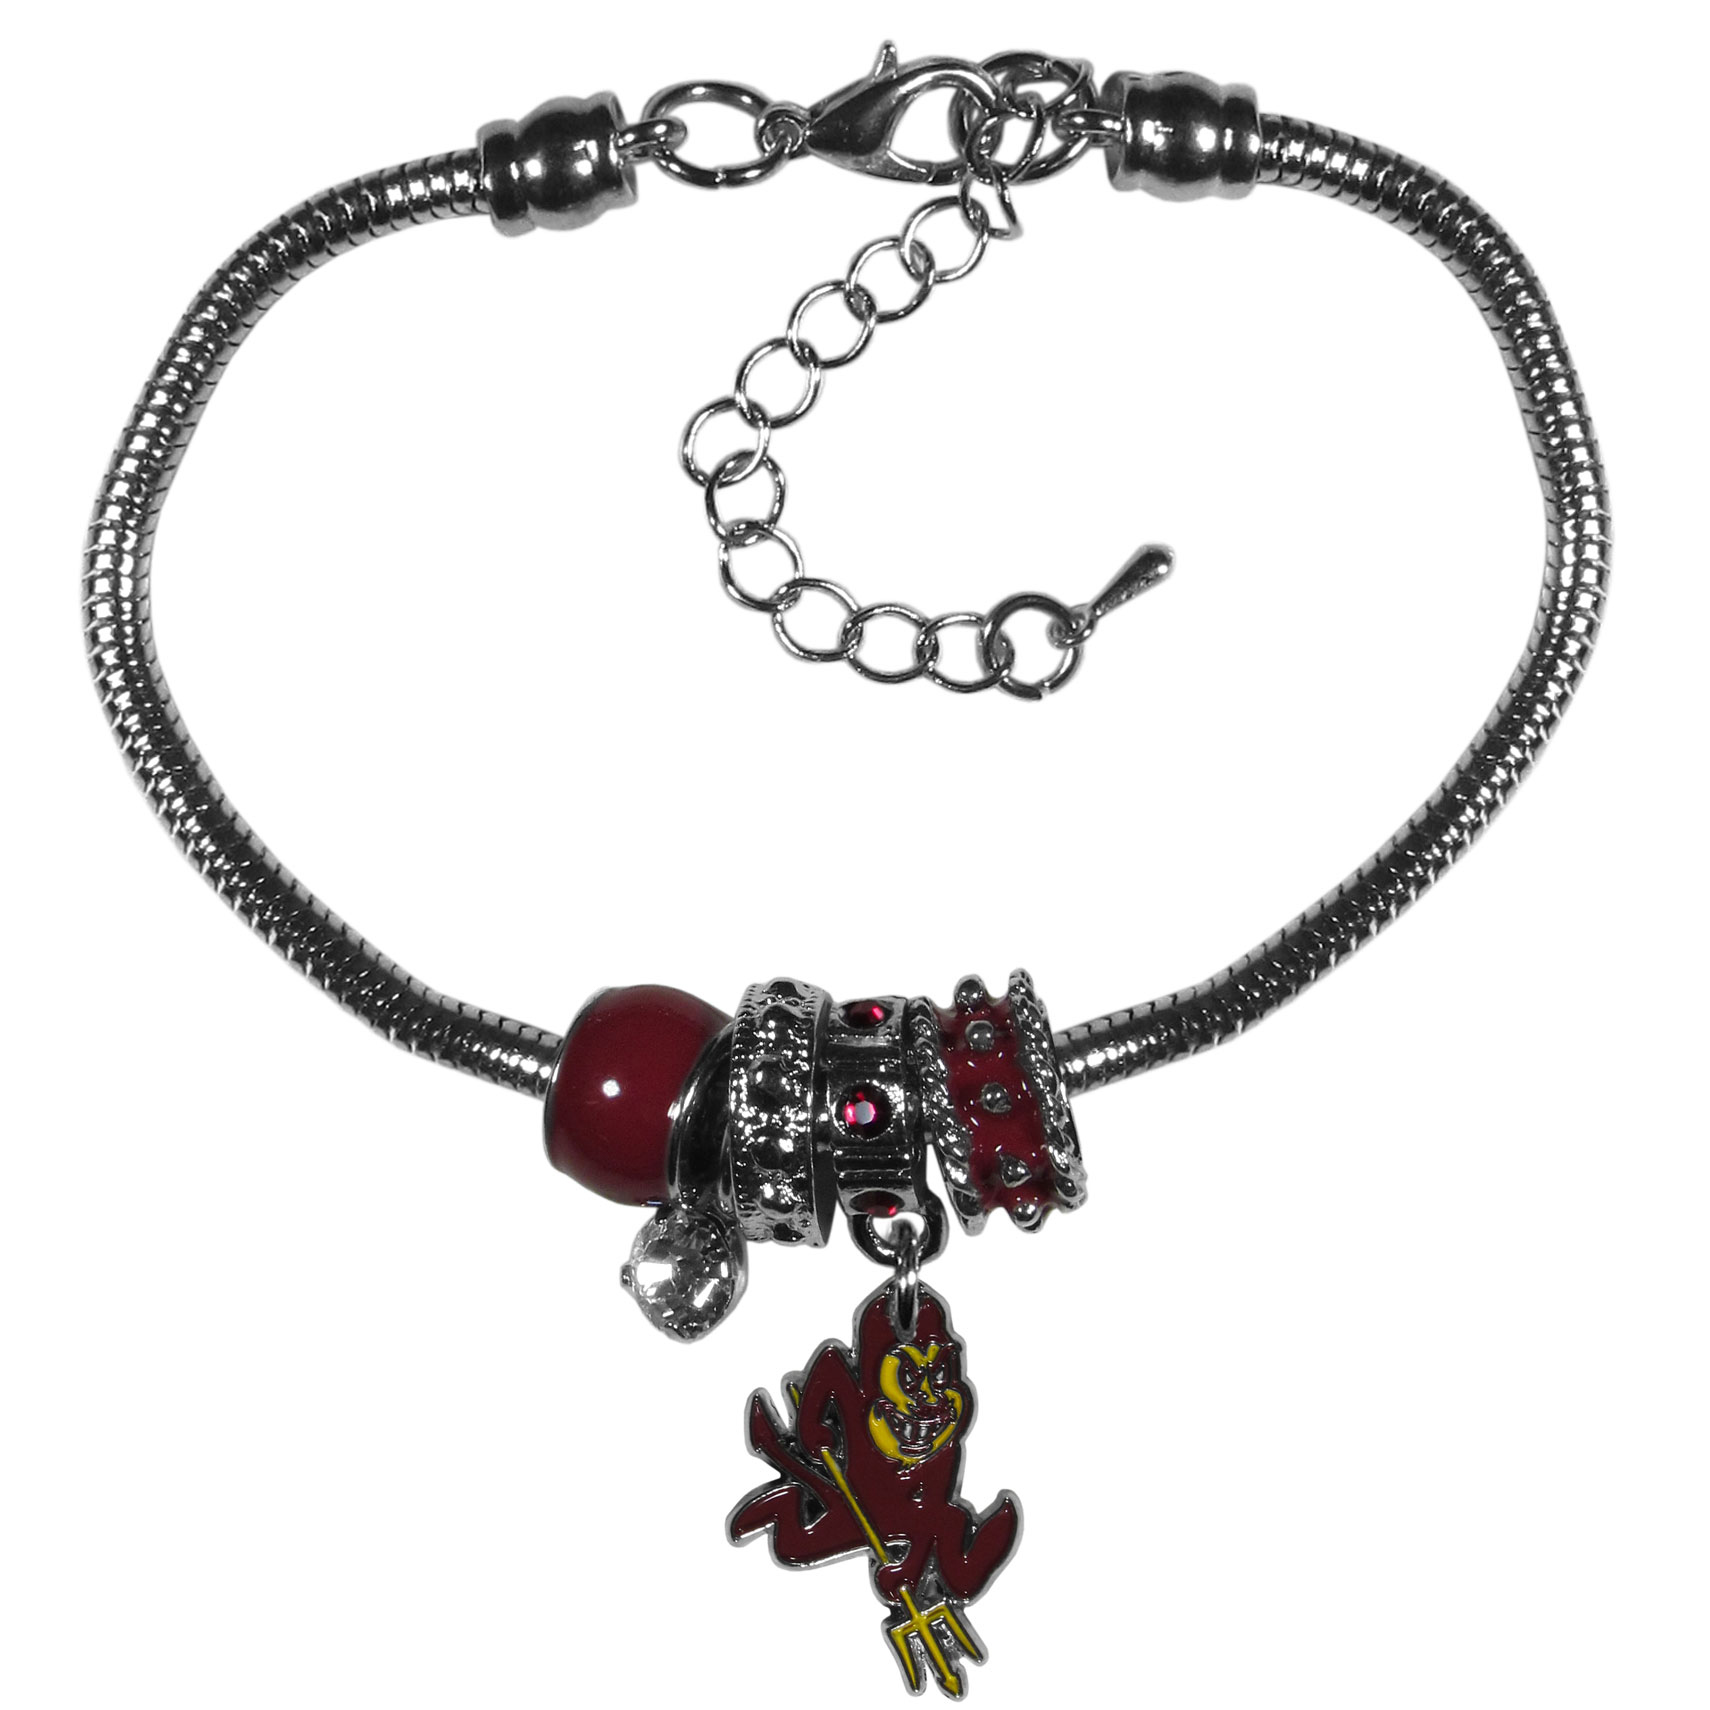 Arizona St. Sun Devils Euro Bead Bracelet - We have combined the wildly popular Euro style beads with your favorite team to create our  Arizona St. Sun Devils bead bracelet. The 7.5 inch snake chain with 2 inch extender features 4 Euro beads with enameled team colors and rhinestone accents with a high polish, nickel free charm and rhinestone charm. Perfect way to show off your team pride.